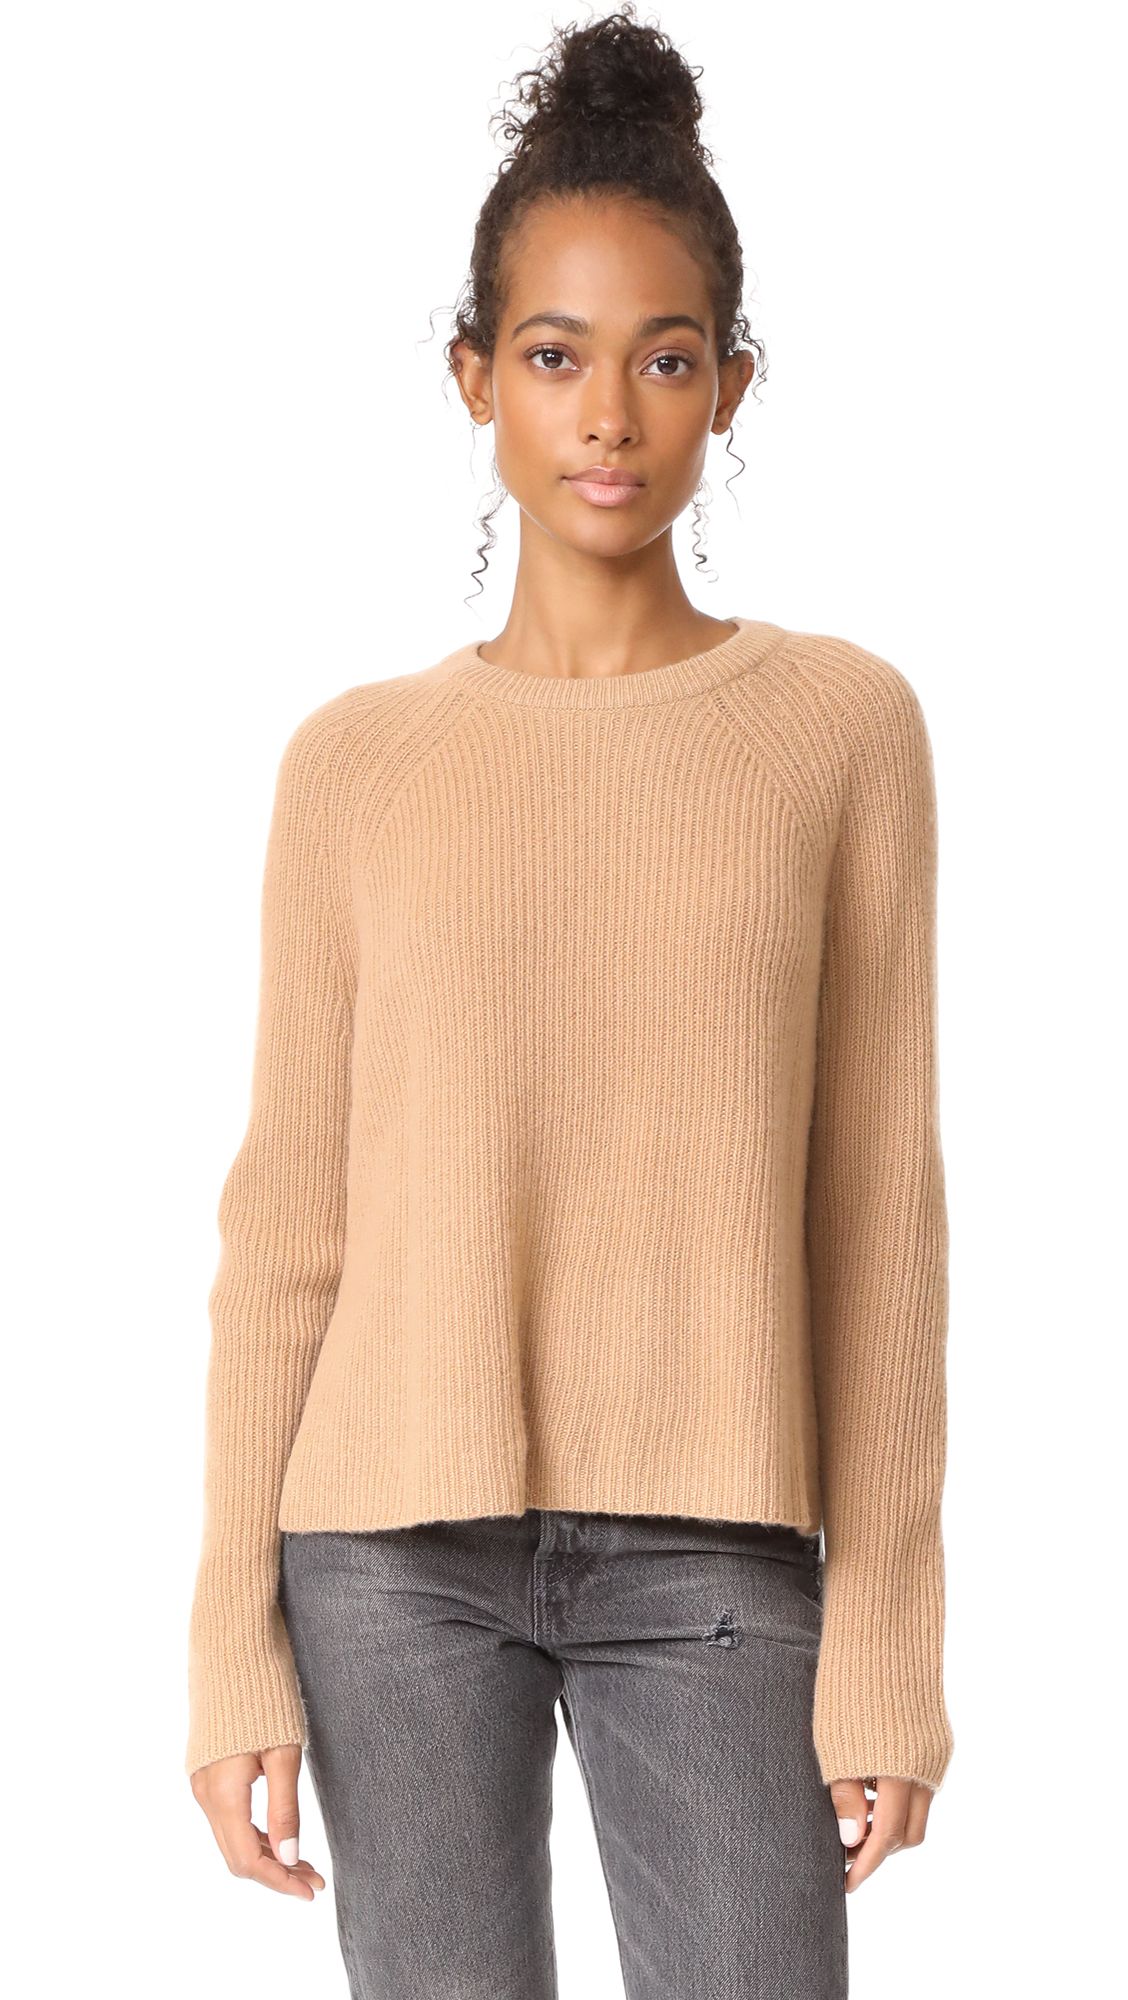 360 SWEATER Bianca Cashmere Sweater